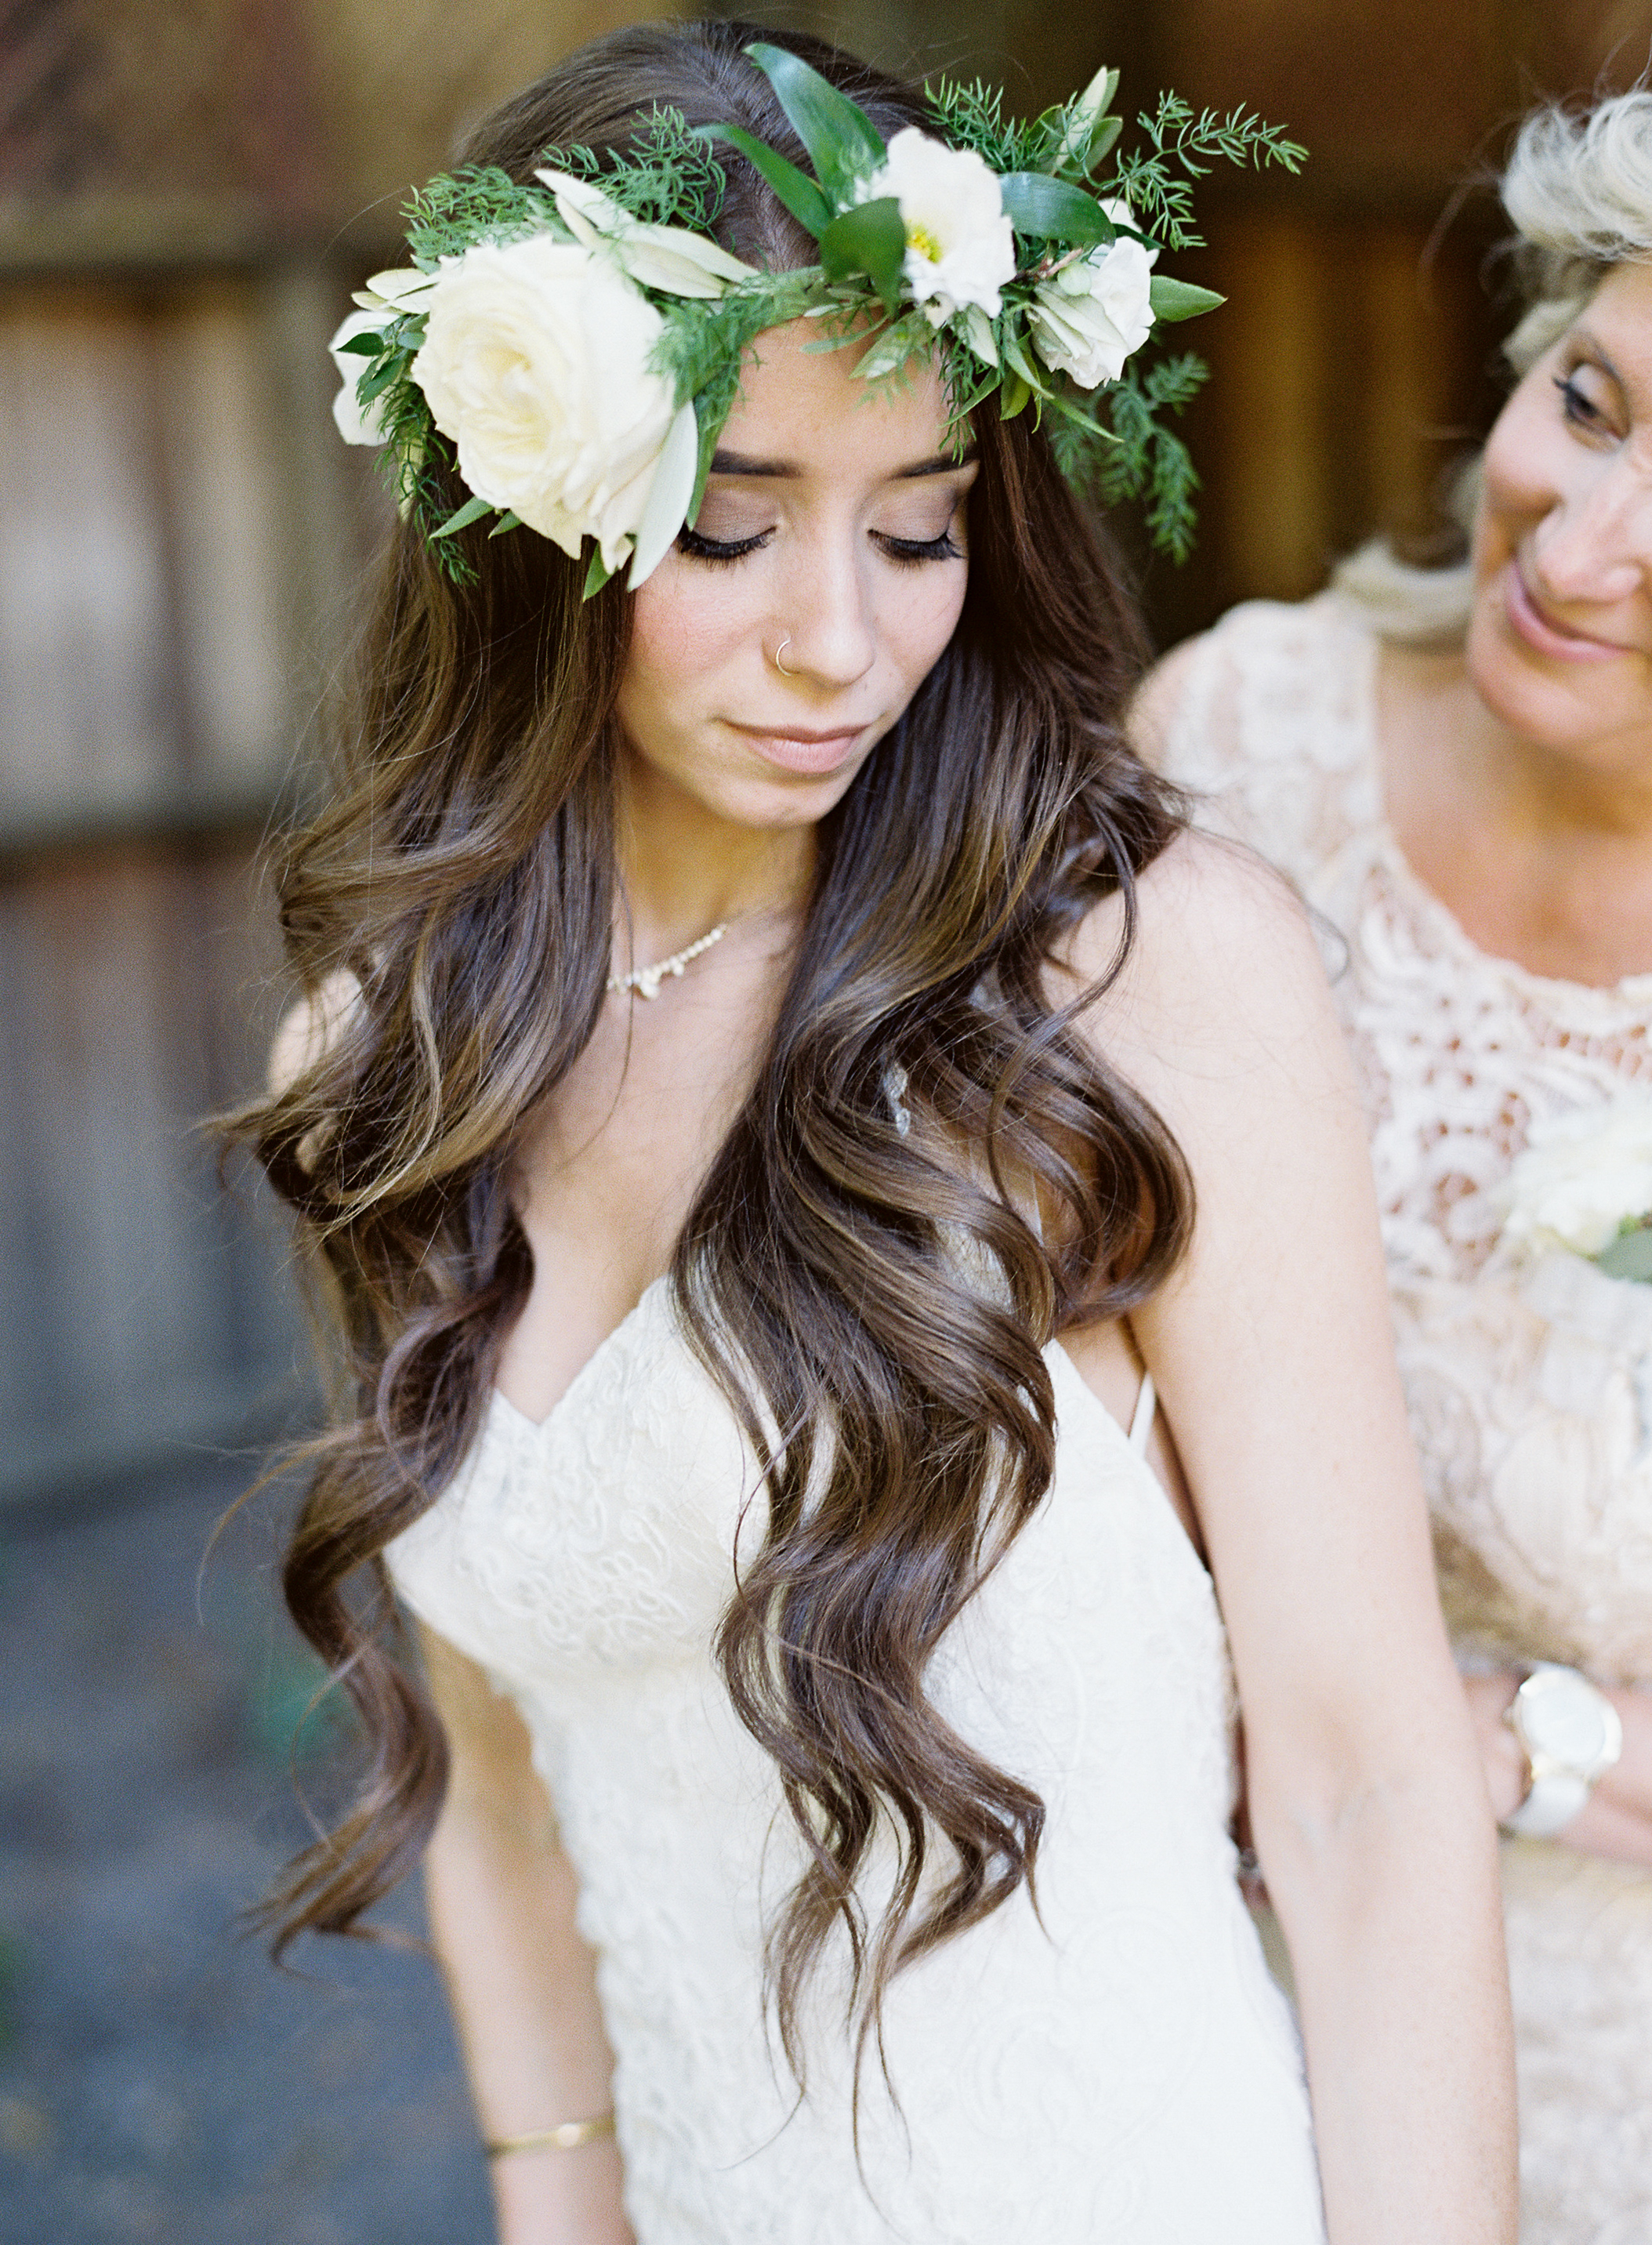 Meghan Mehan Photography | California Wedding Photographer | Napa California Wedding Photographer 059.jpg